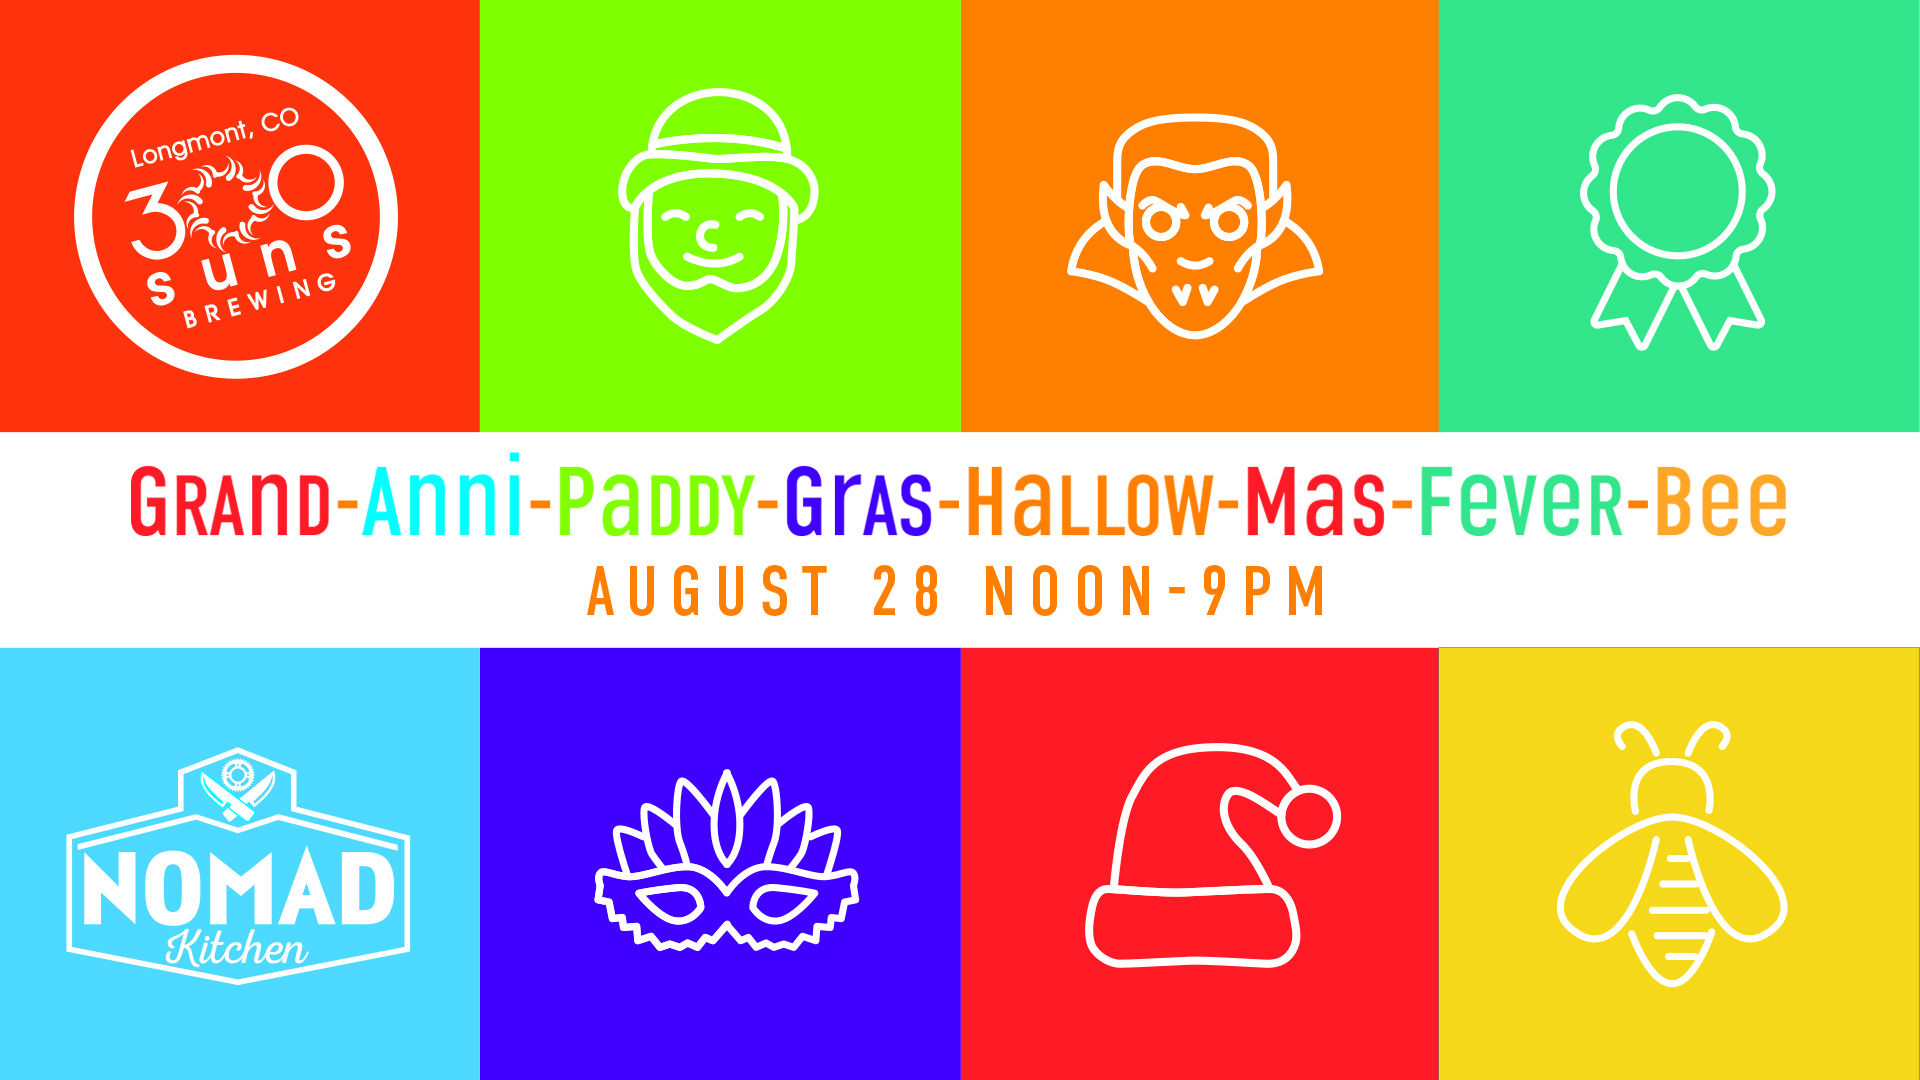 Grand-anni-paddy-gras-hallow-mas-fever-bee